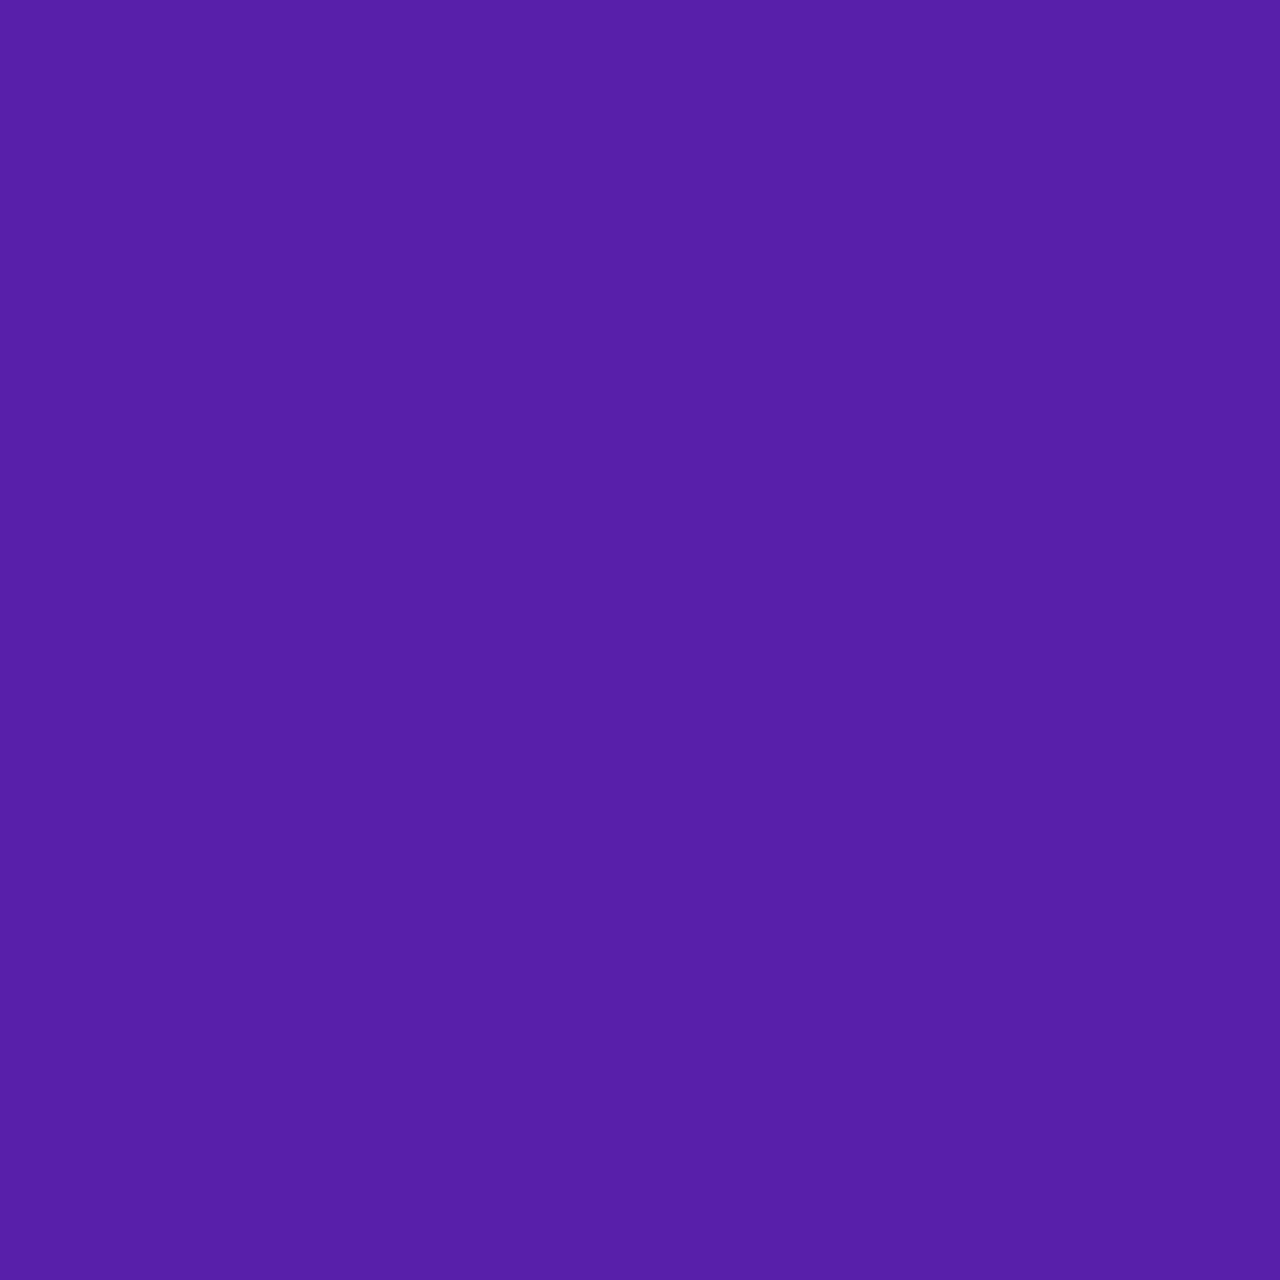 #0058 Rosco Gels Roscolux Deep Lavender, 20x24""